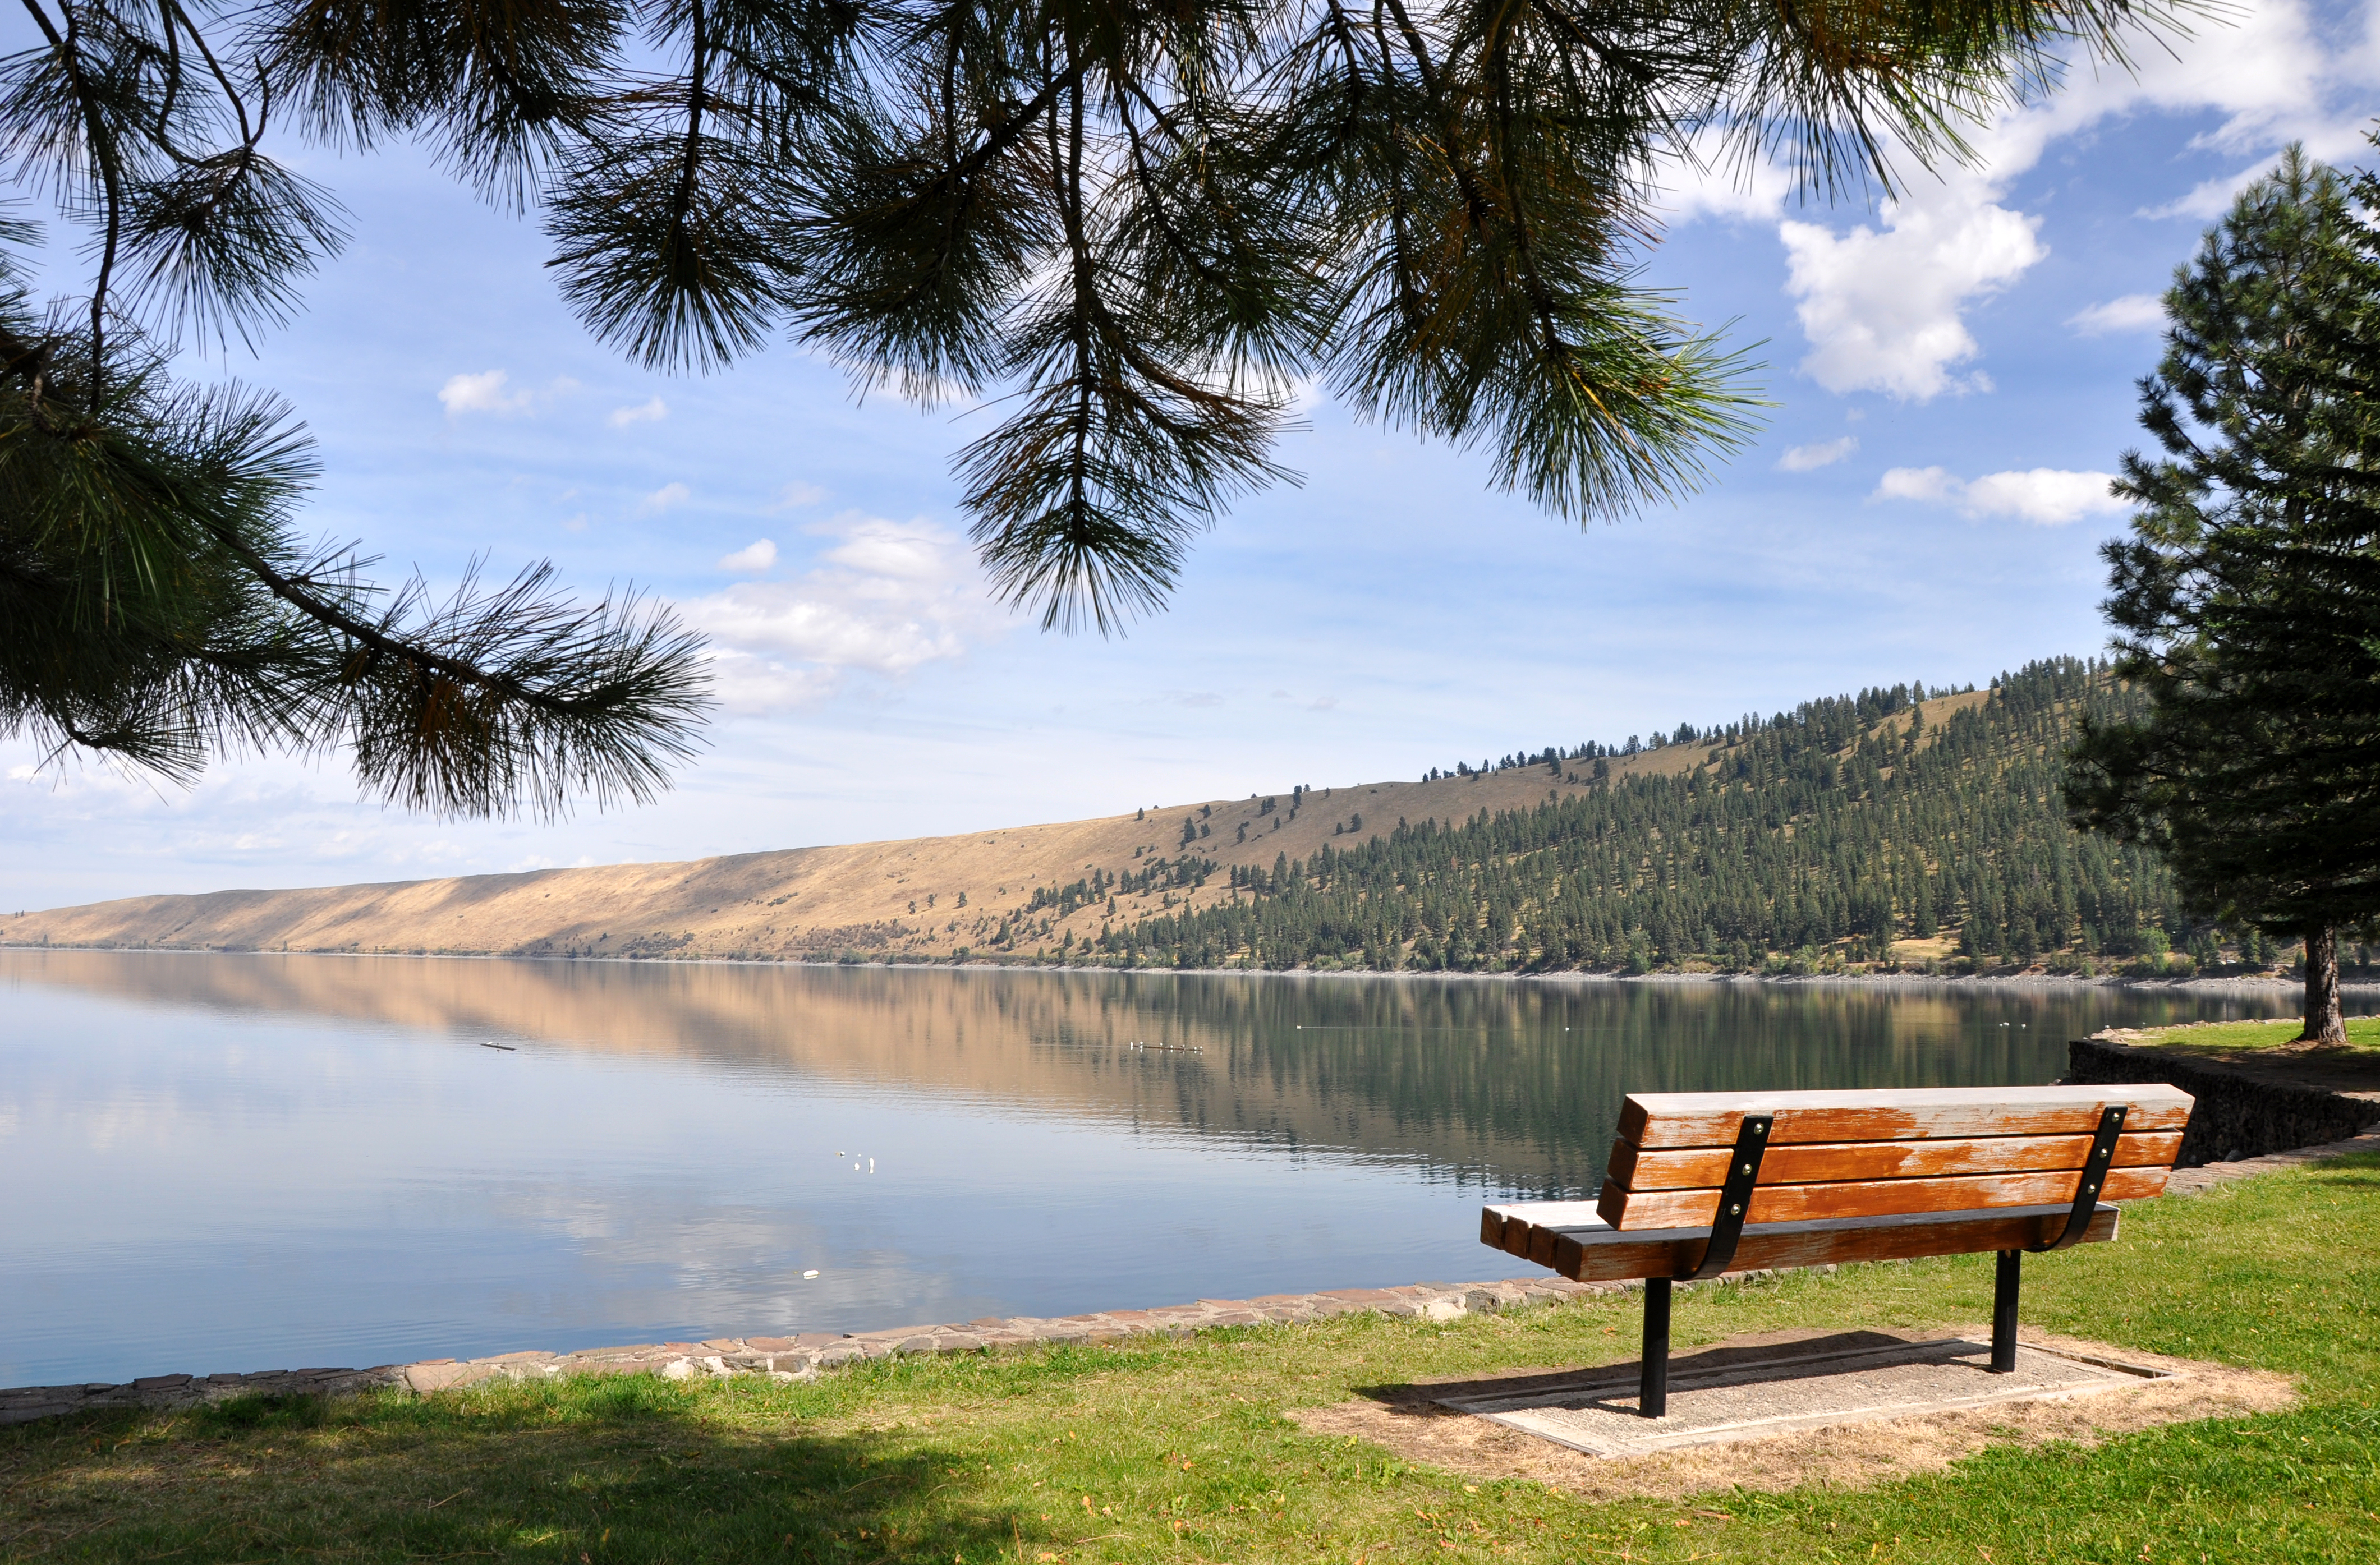 Enjoy all that the Oregon Wilderness has to offer with a new RV! available in Salem, OR at Roberson RV